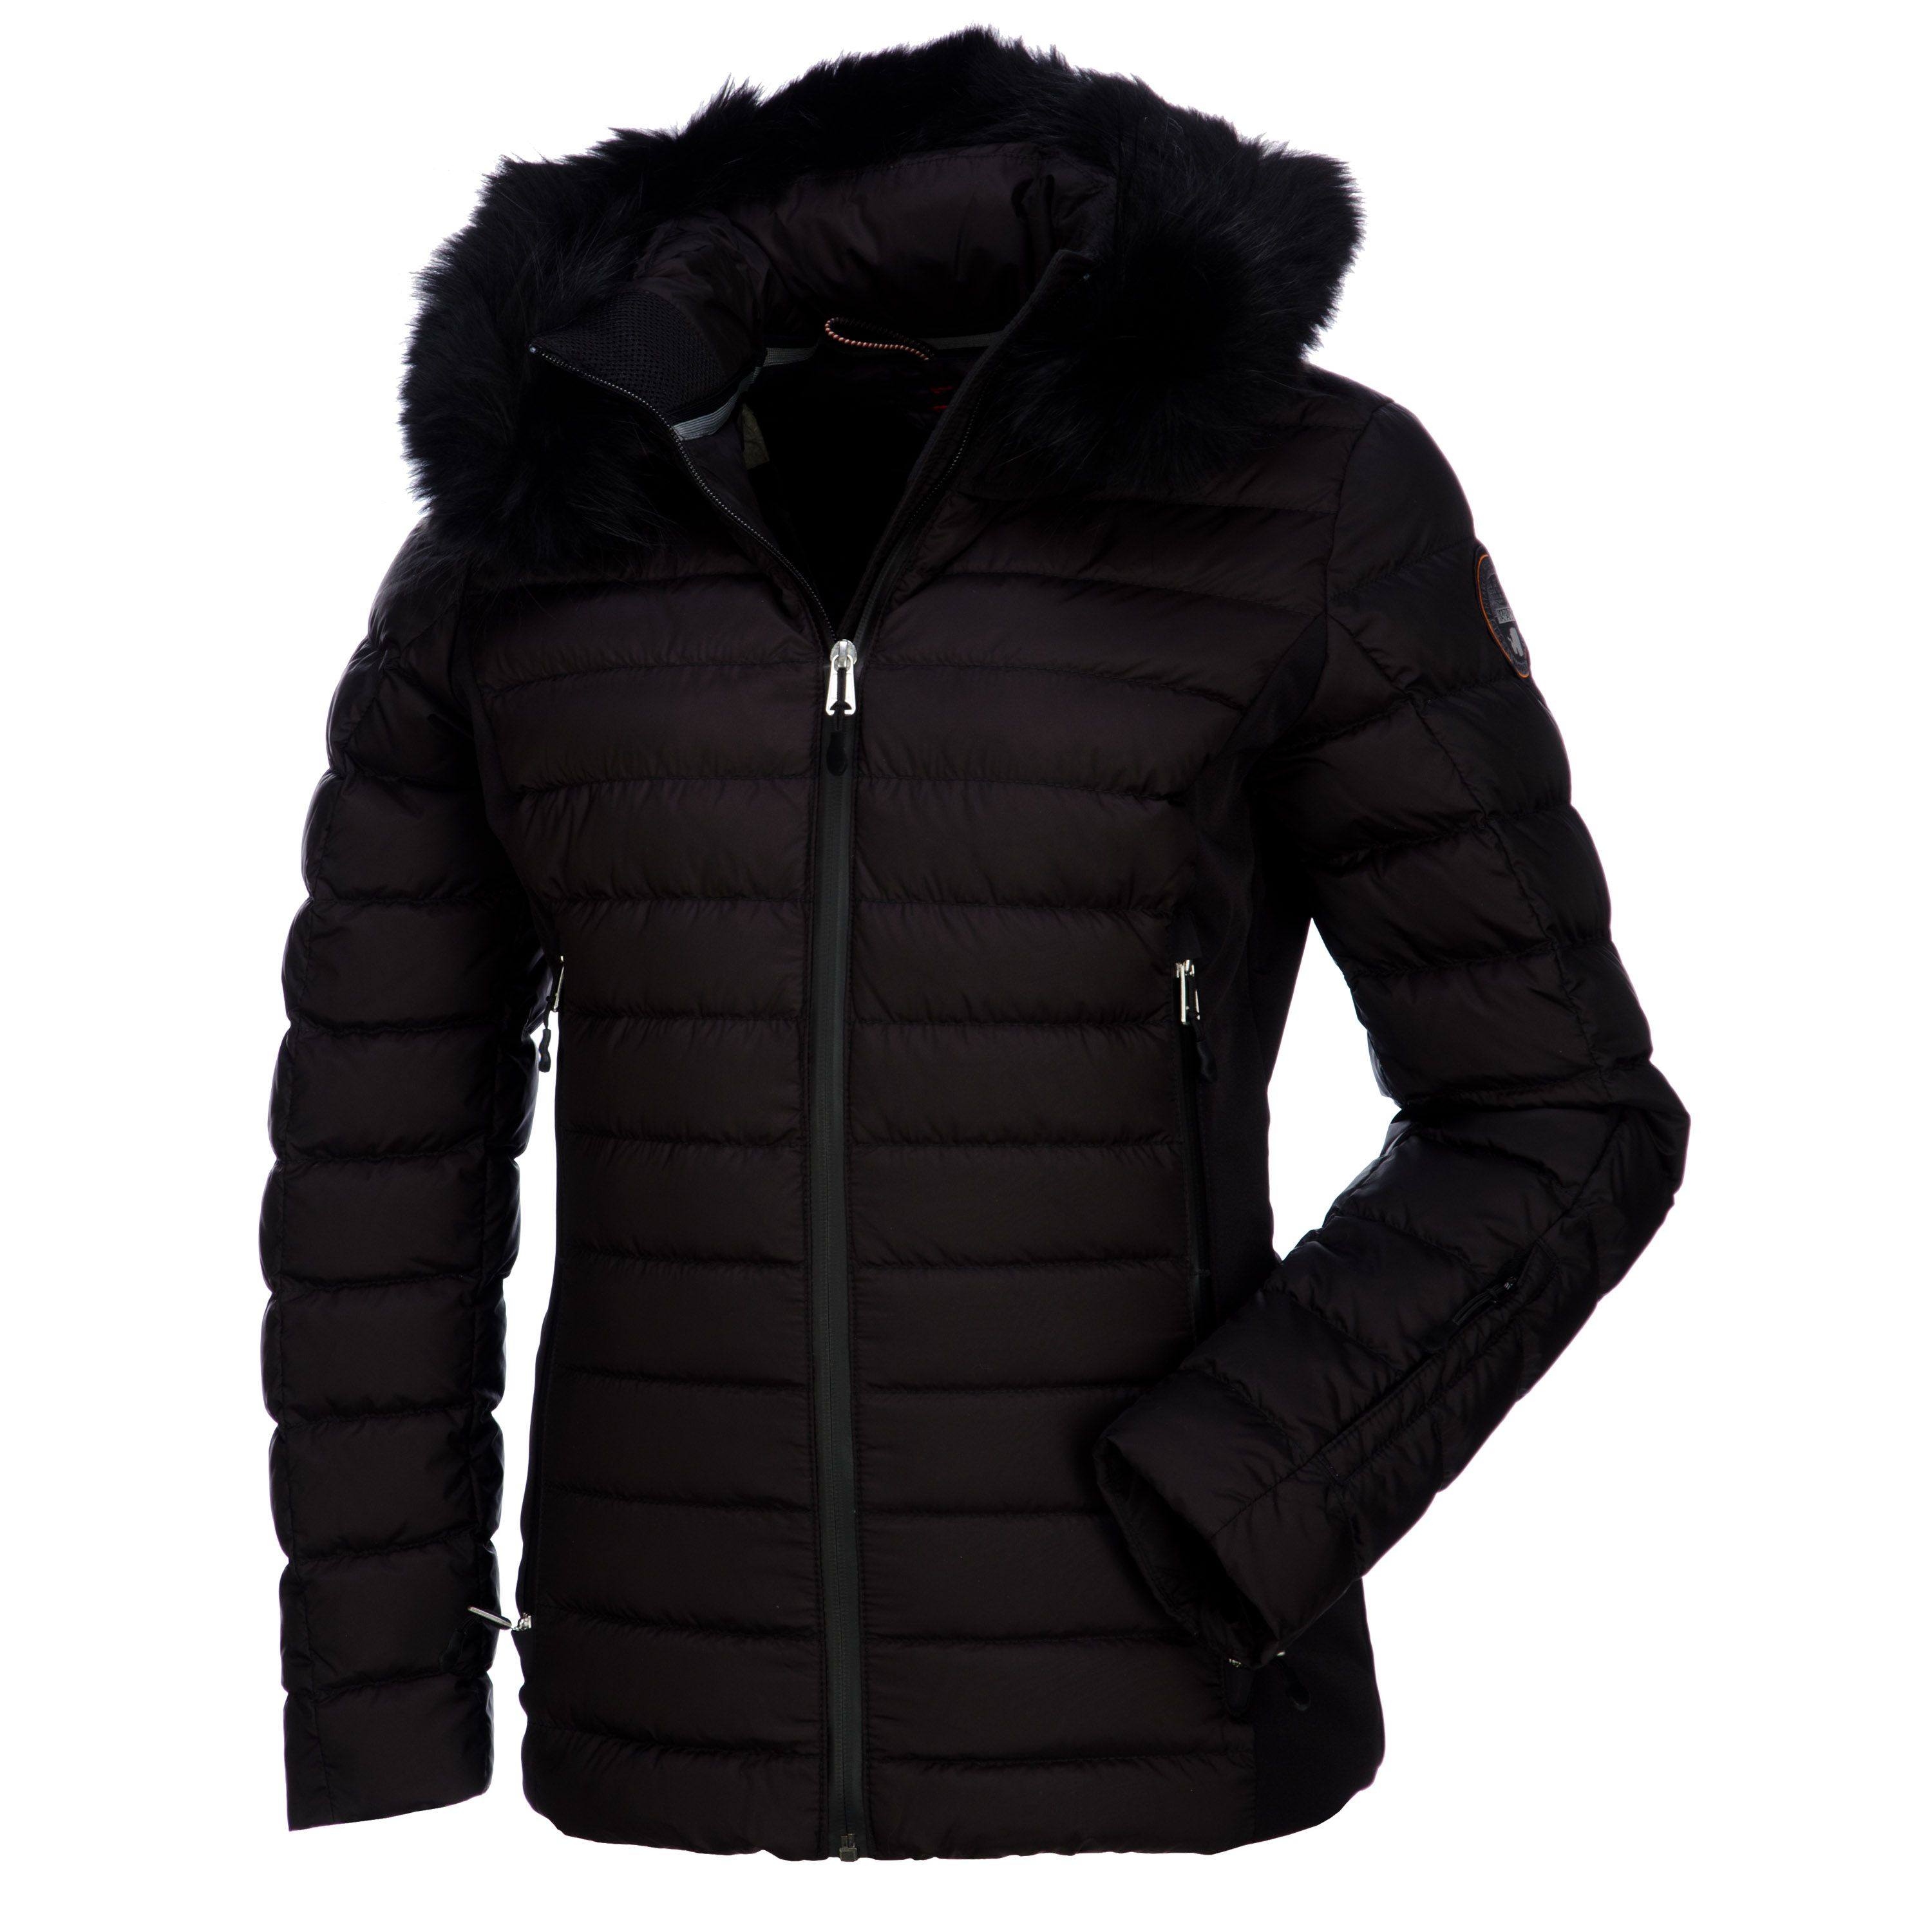 Ladies black padded ski jacket - The best jackets and coats of your choice